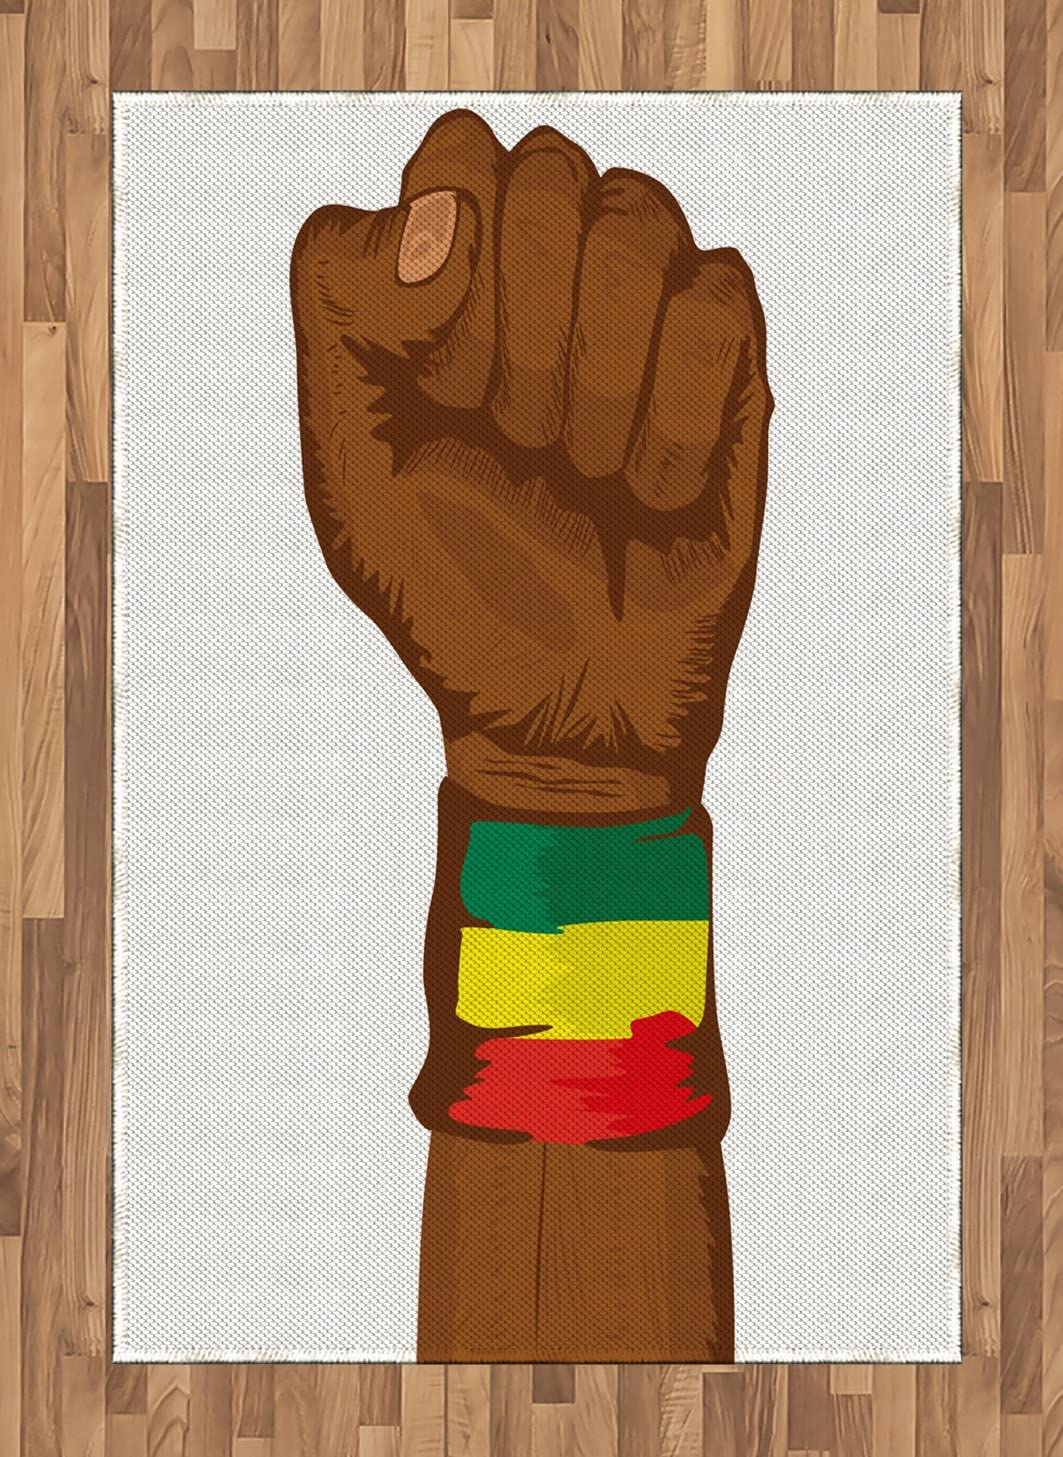 Ambesonne Rasta Area Rug, Ethiopian Rebellion Wrist with Flag Colors Art Print, Flat Woven Accent Rug for Living Room Bedroom Dining Room, 4' X 5.7', Brown Green Yellow Red and Green